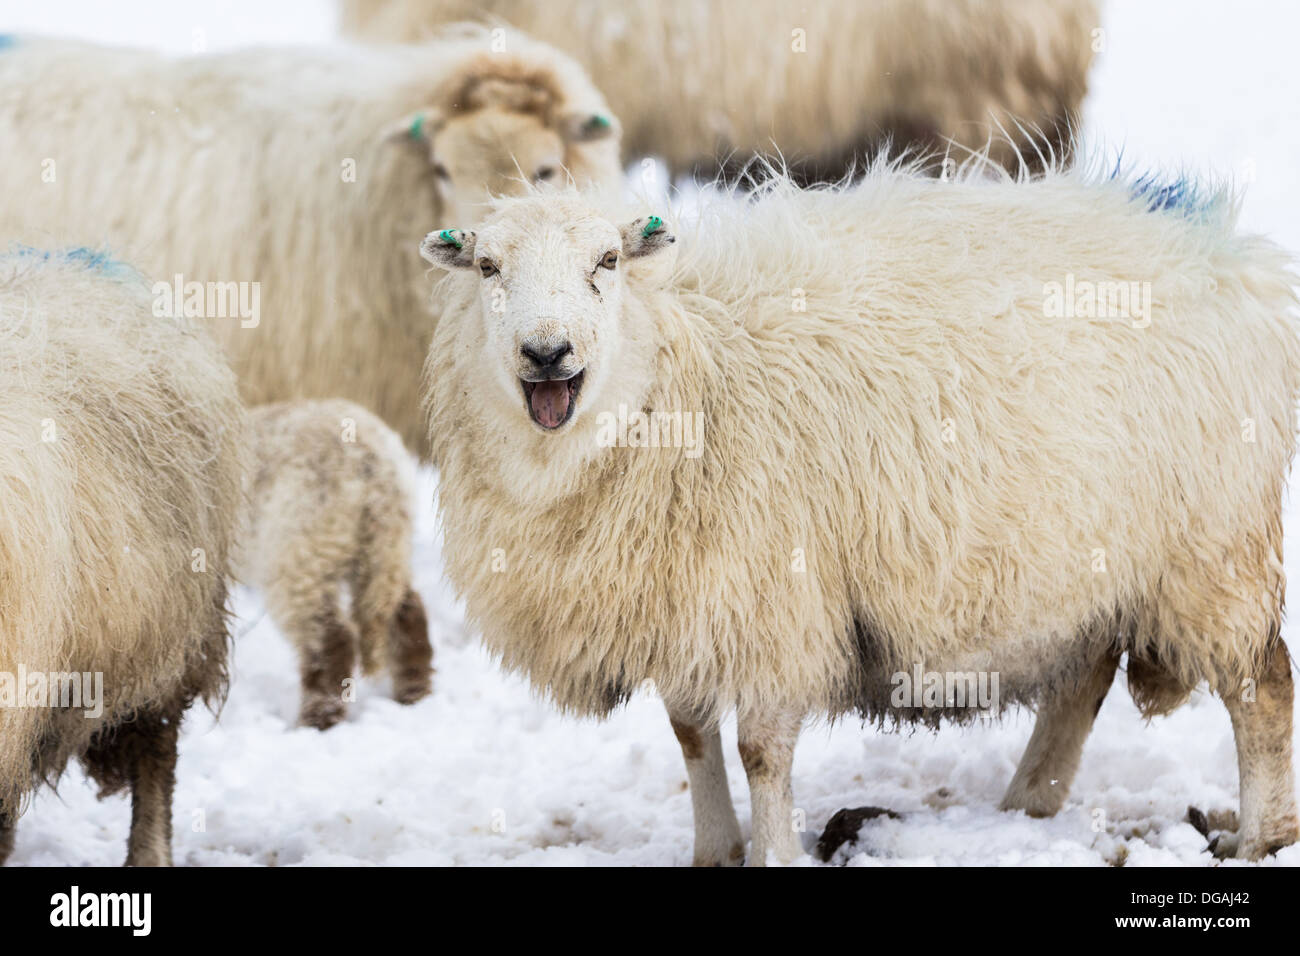 Sheep bleating in the snow on the Welsh hills - Stock Image